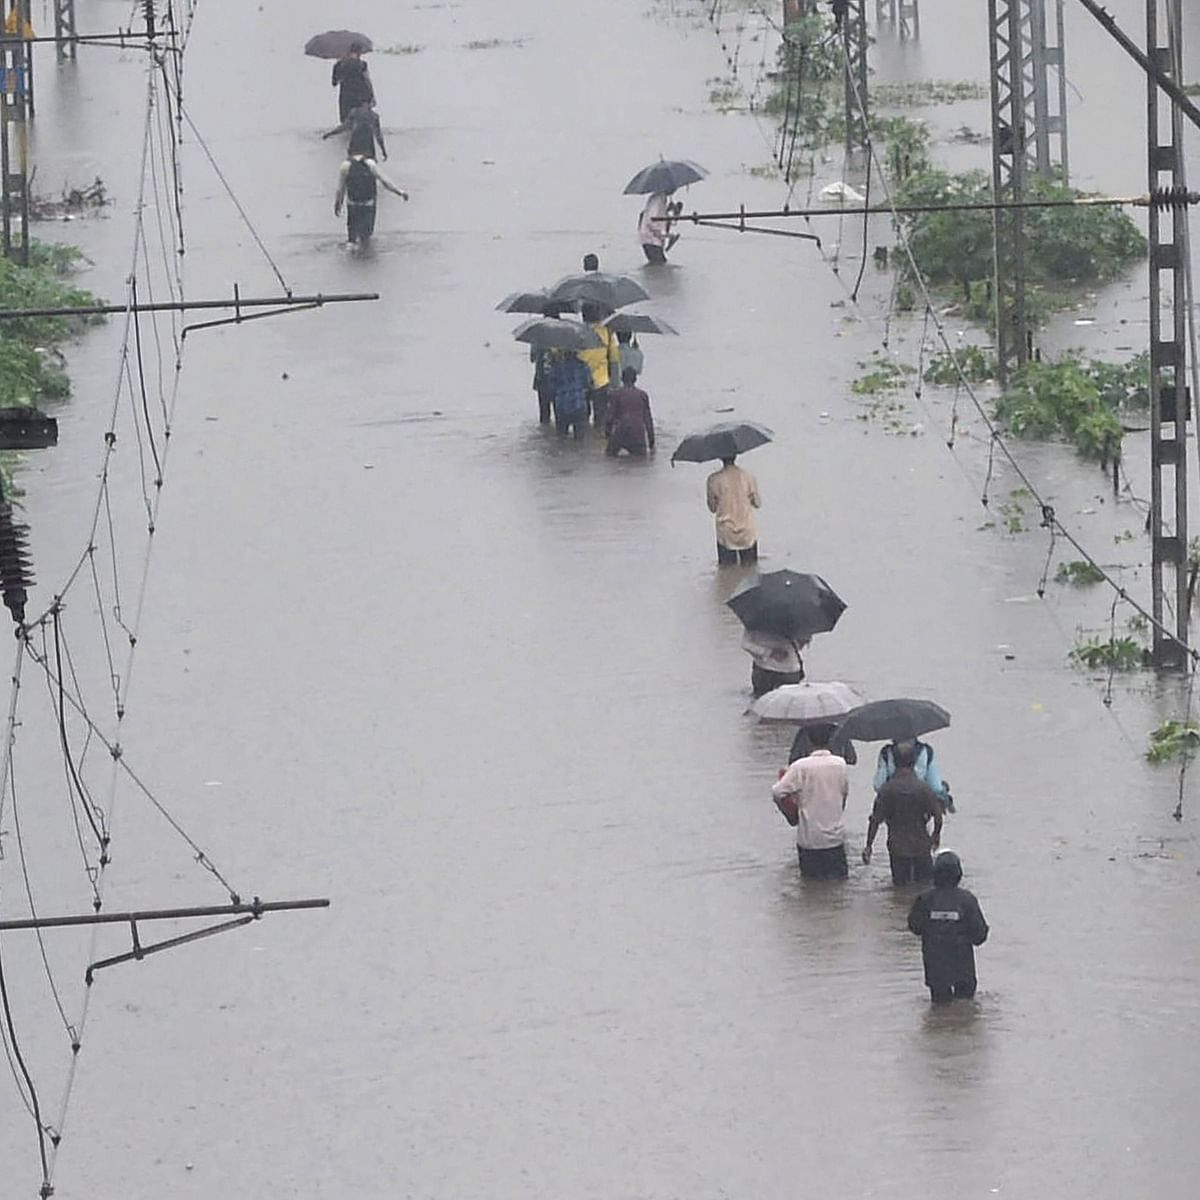 Mumbai Rains: Can't shake off that deja vu